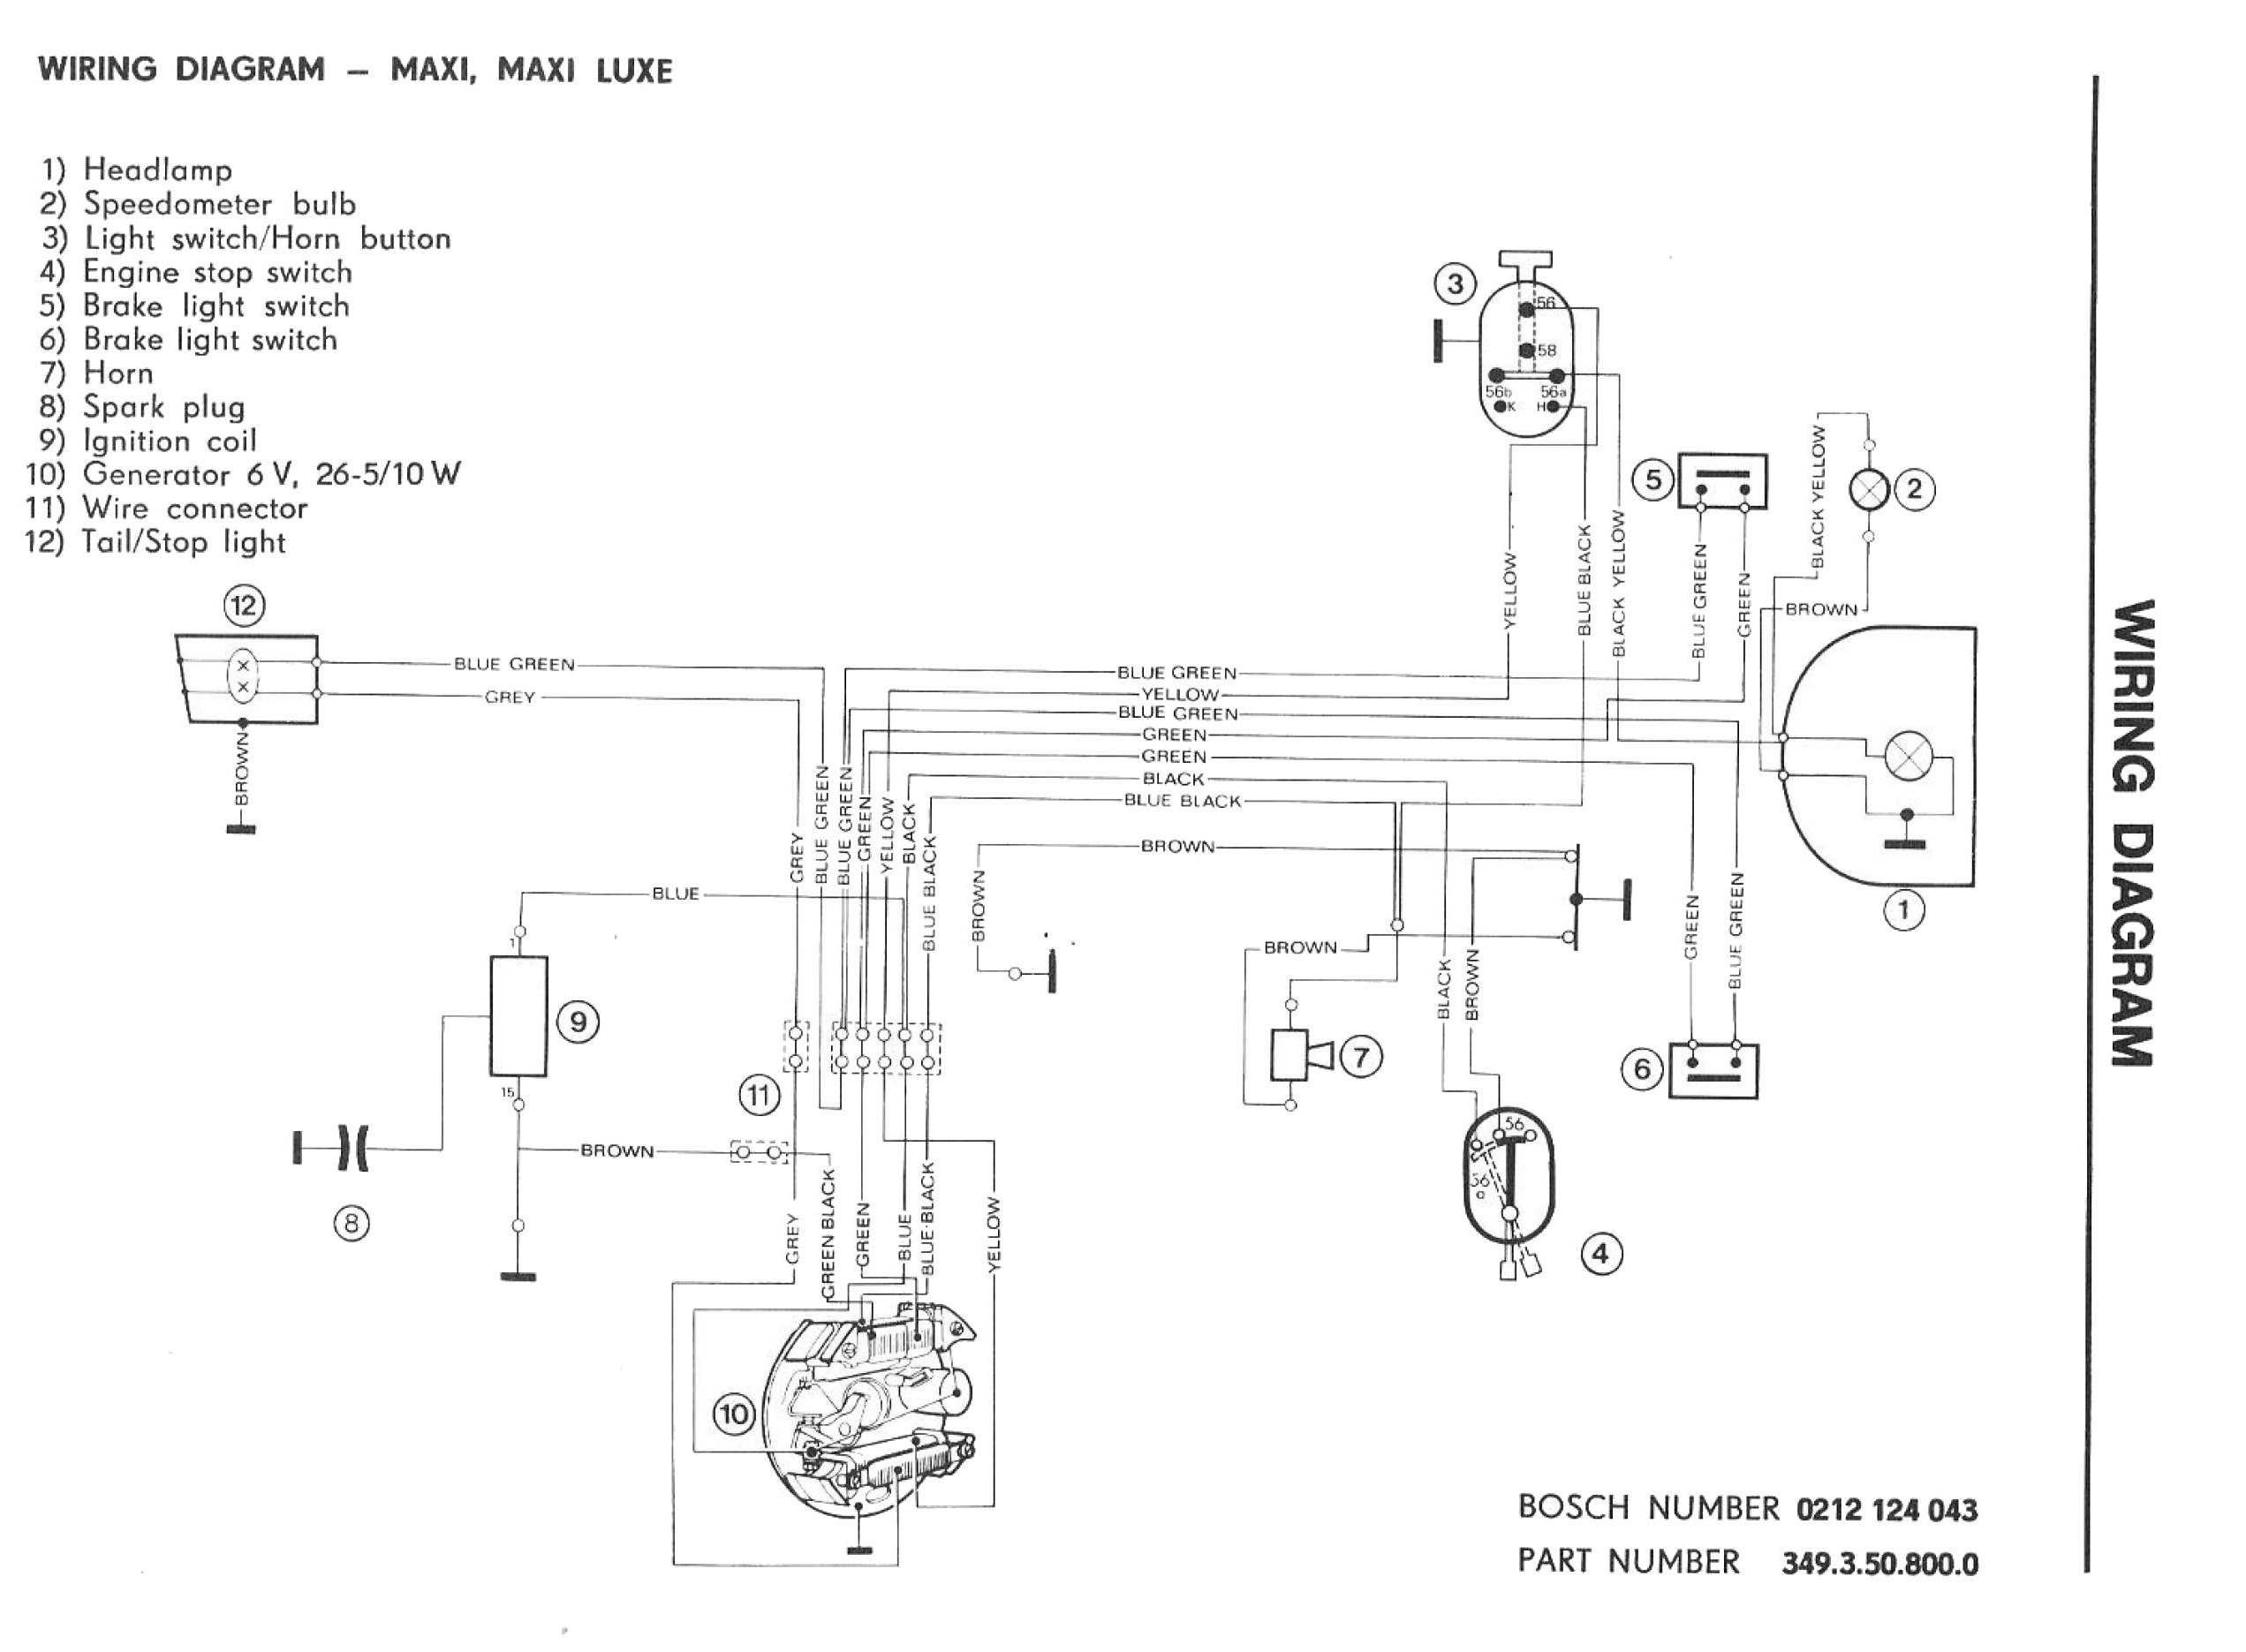 Yfz 450 Schematic | Wiring Diagram Database  Wire Alternator Wiring Diagram For Curl on